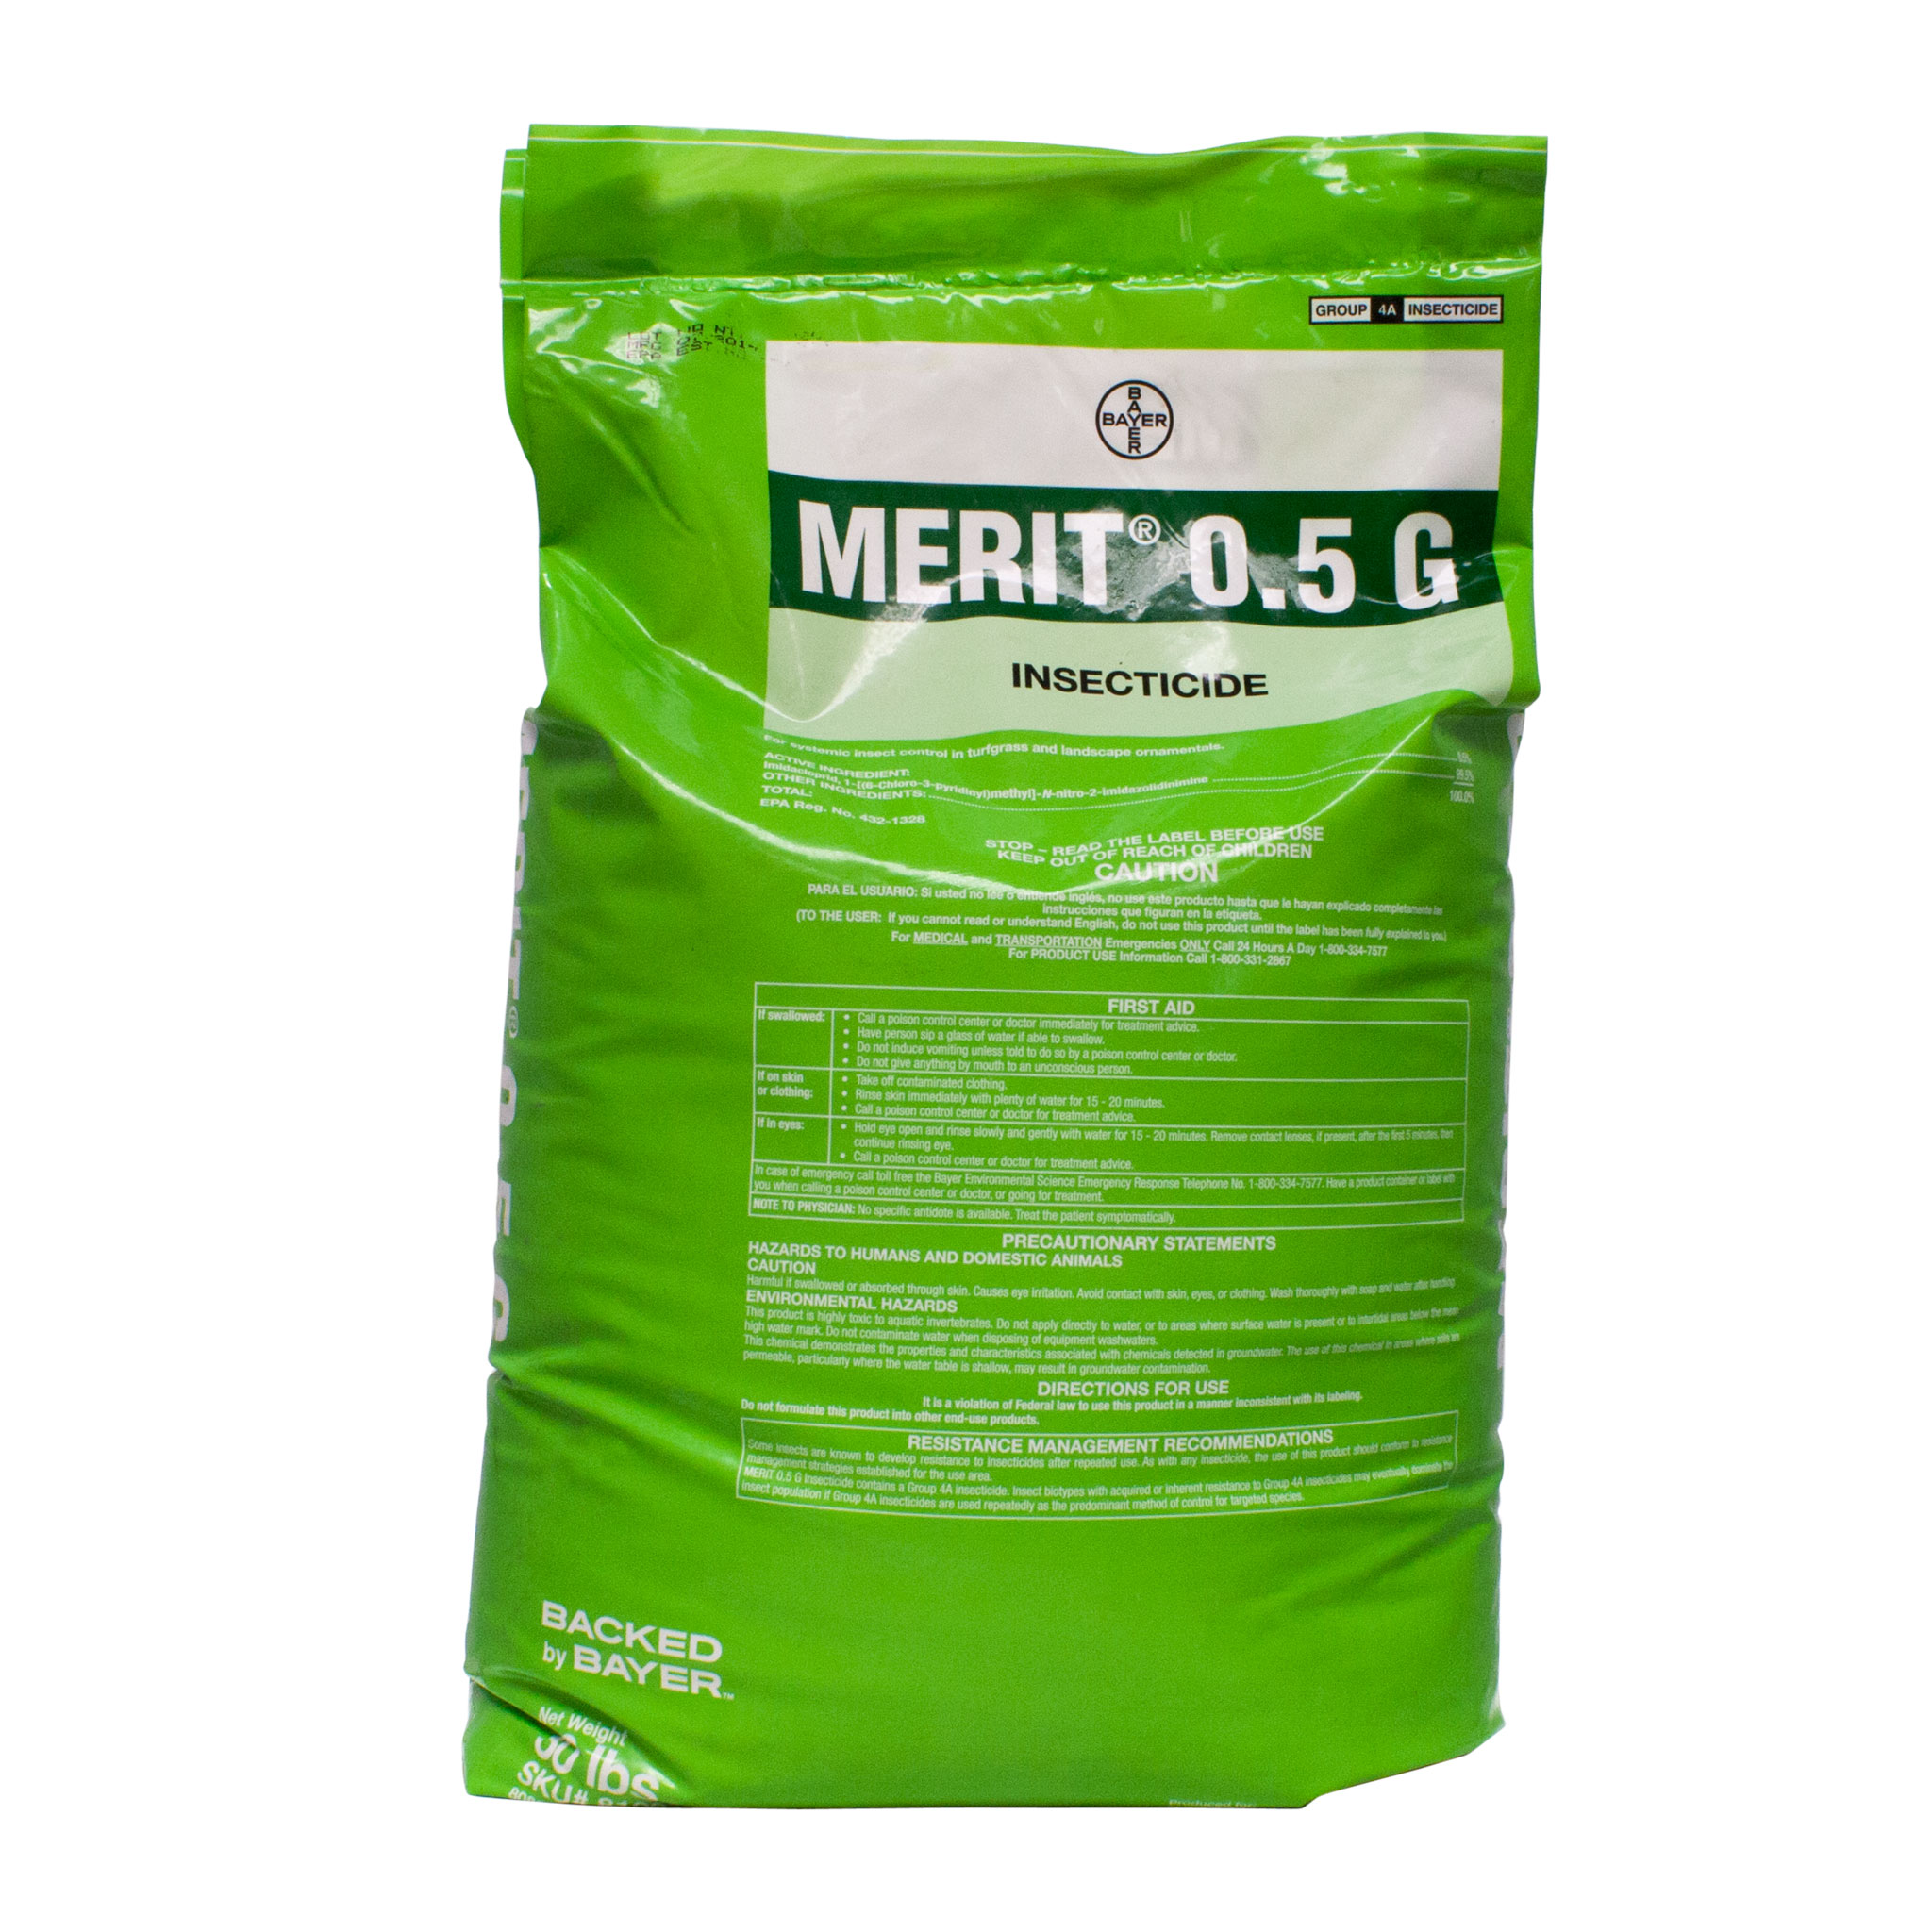 Merit Granular Insecticide for Grub Control